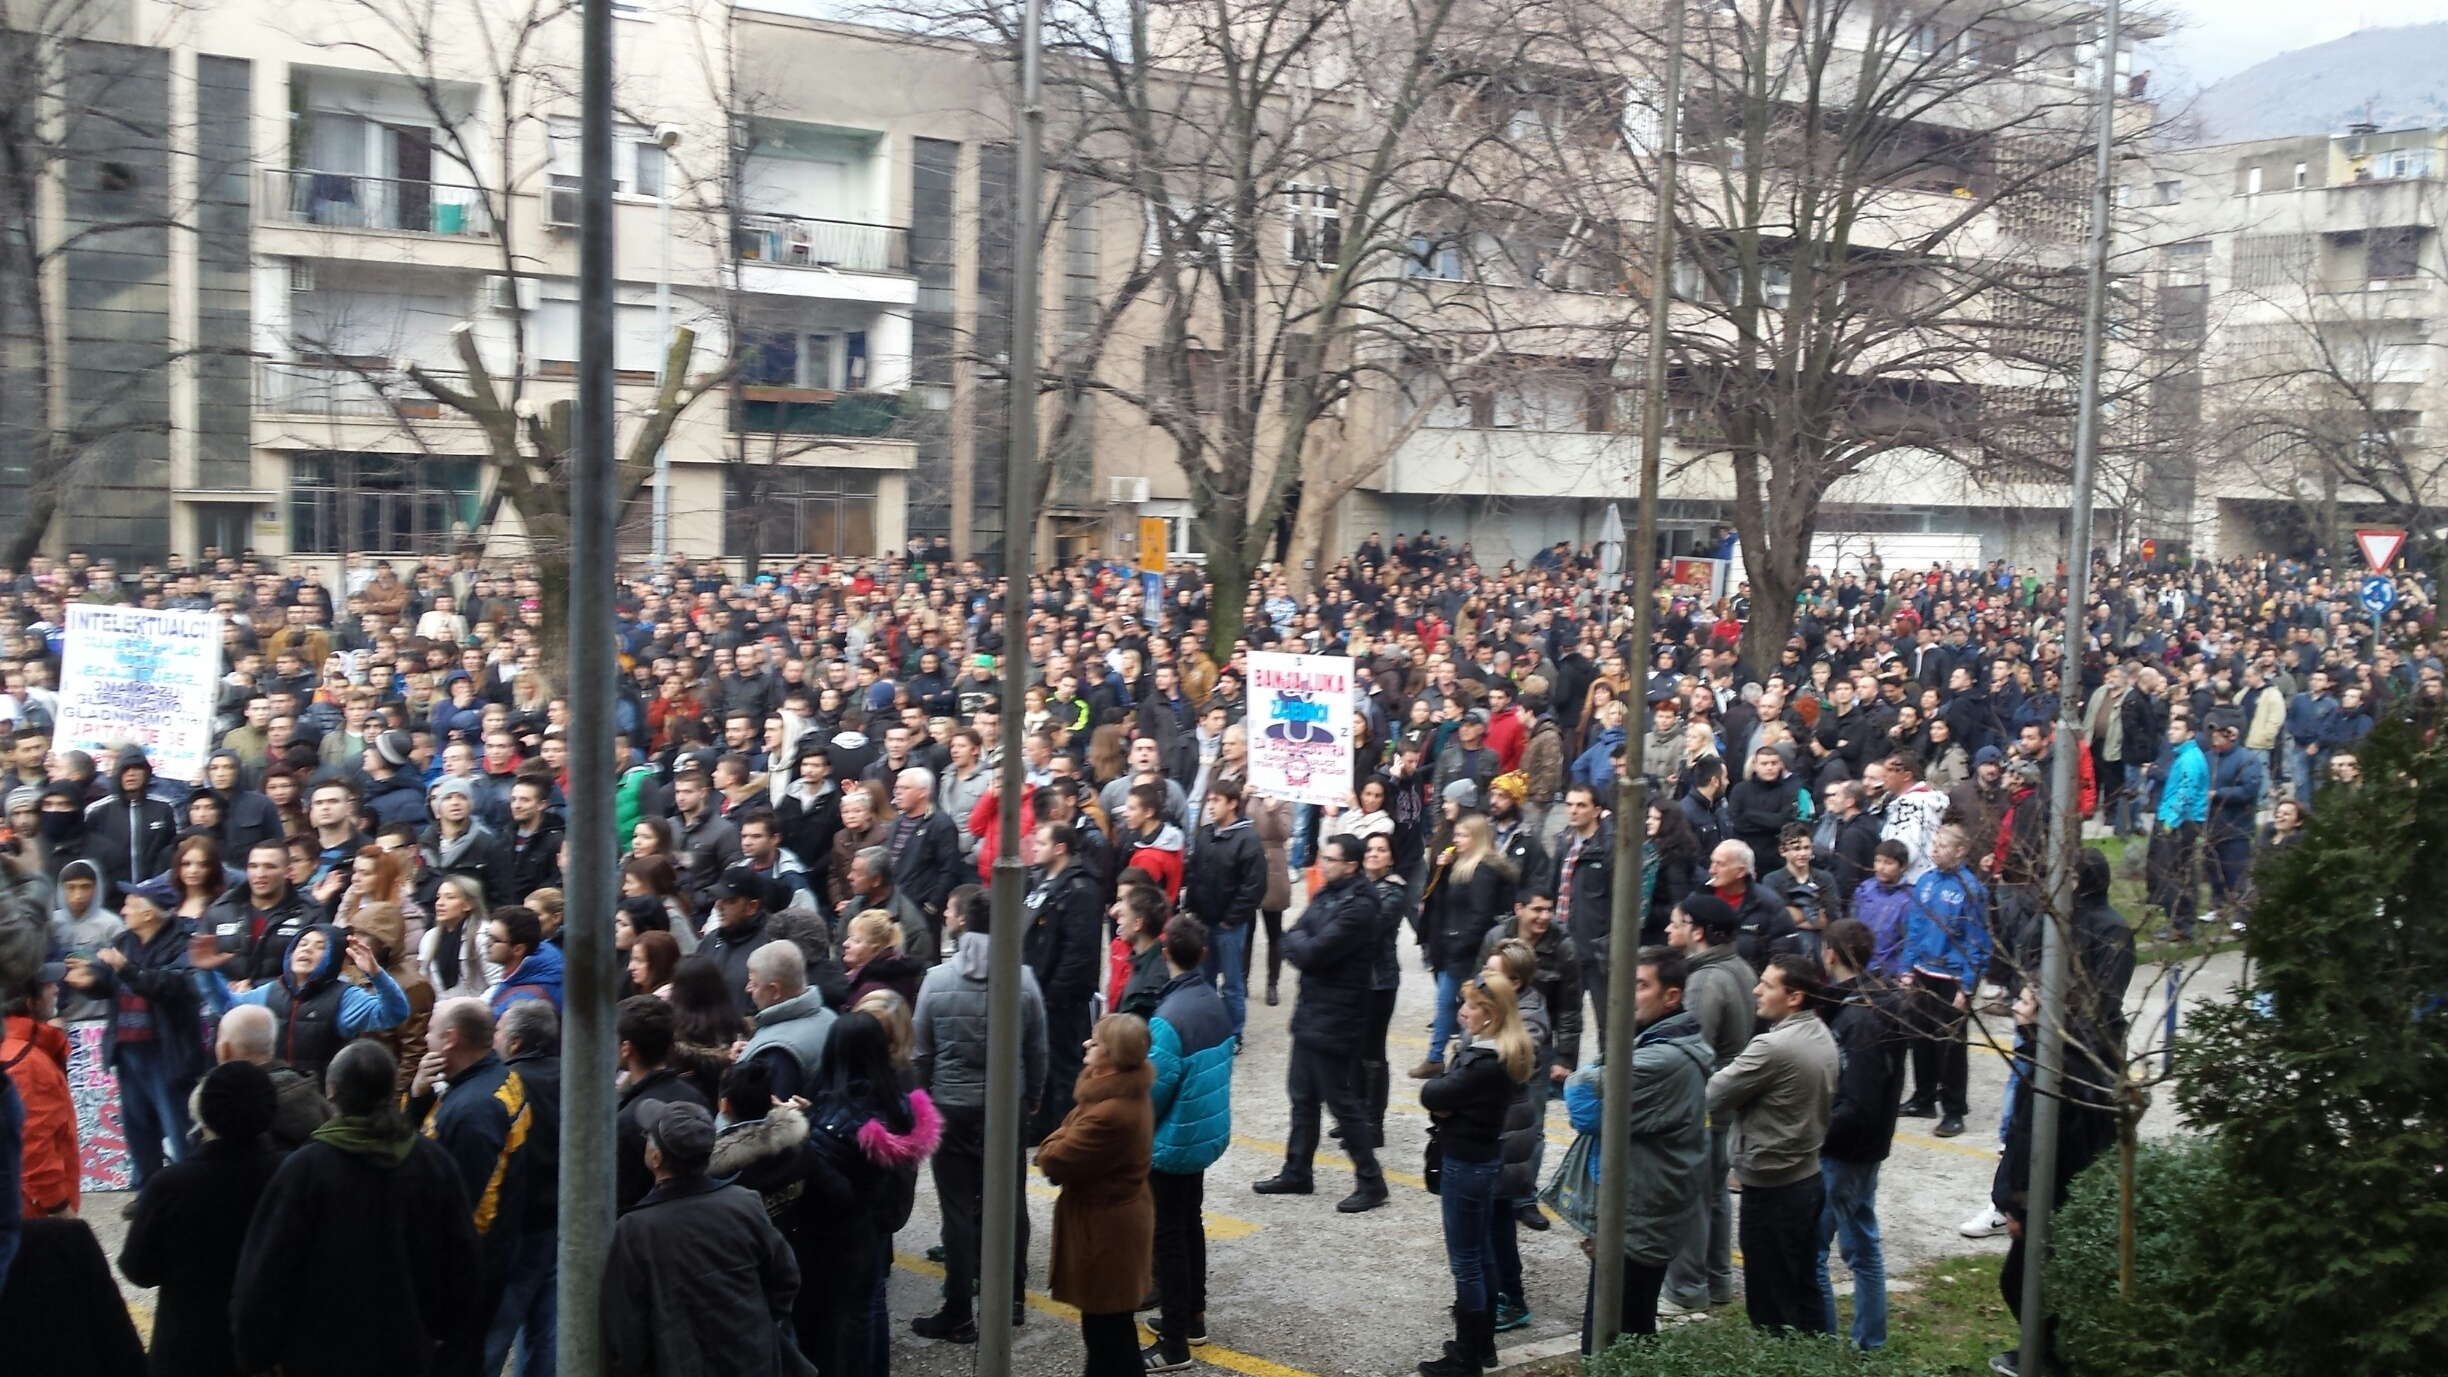 Protesters on the streets of Mostar